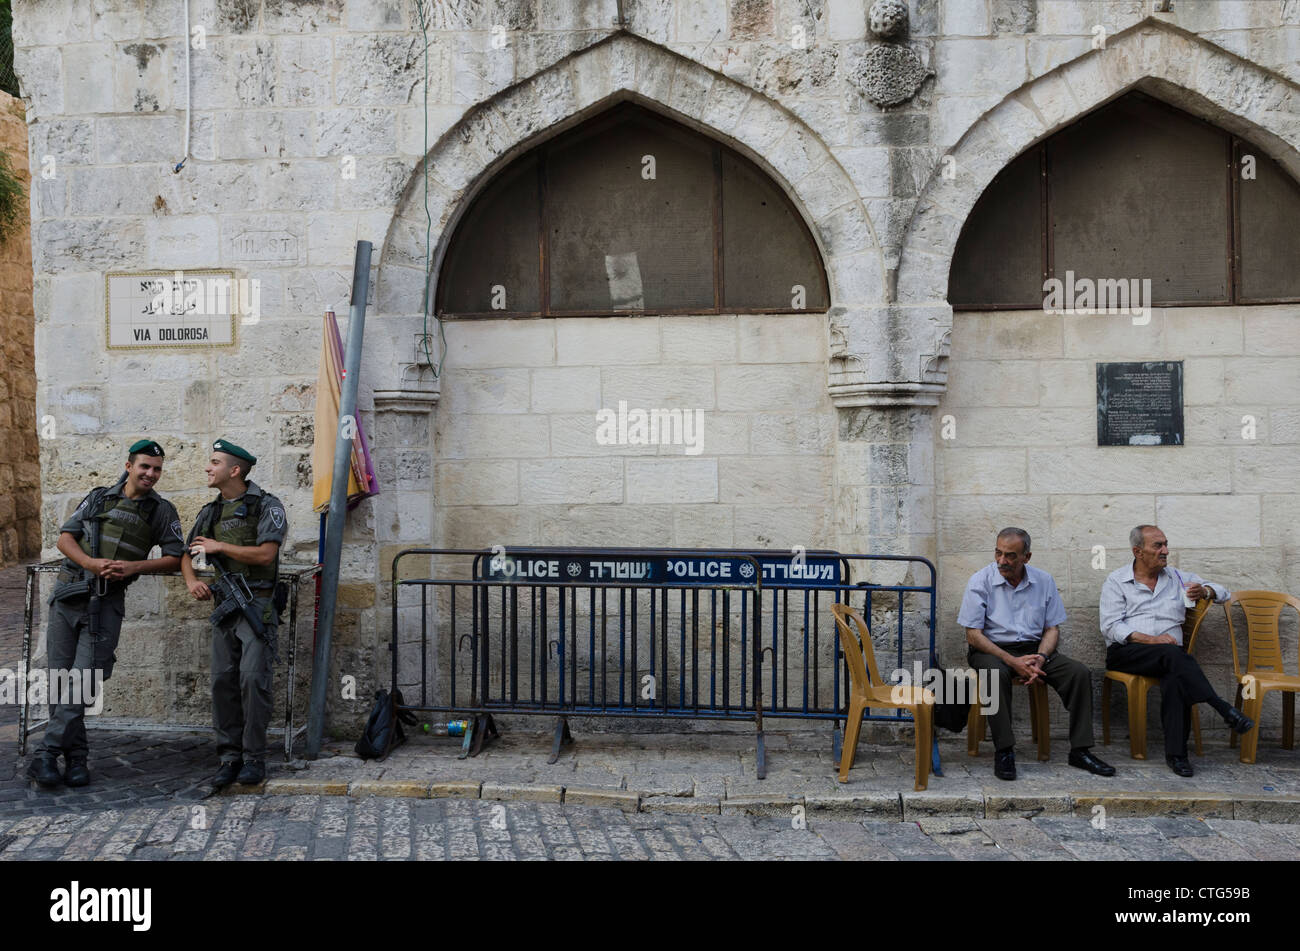 two Israeli border patrols and two elderli Palestinians at the fifth station of the Via Dolorosa. Jerusalem Old - Stock Image